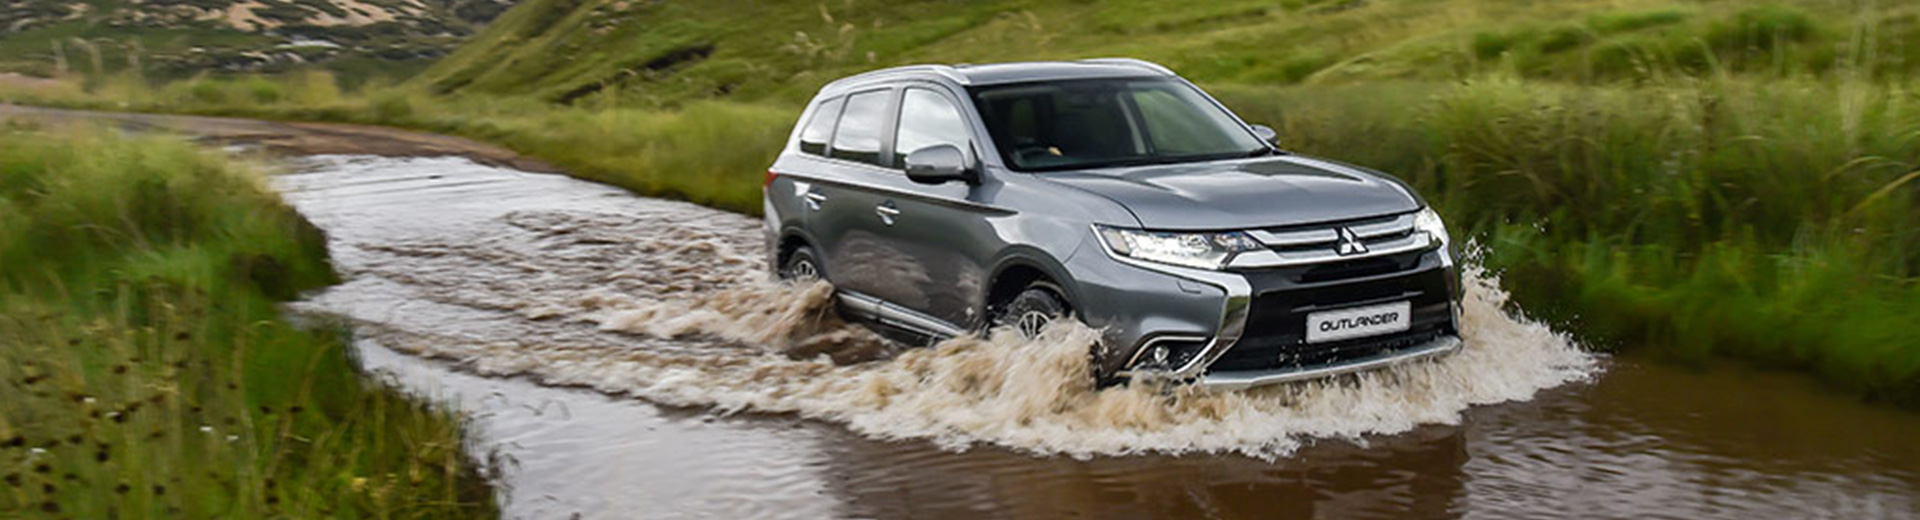 Mitsubishi Outlander Off-road